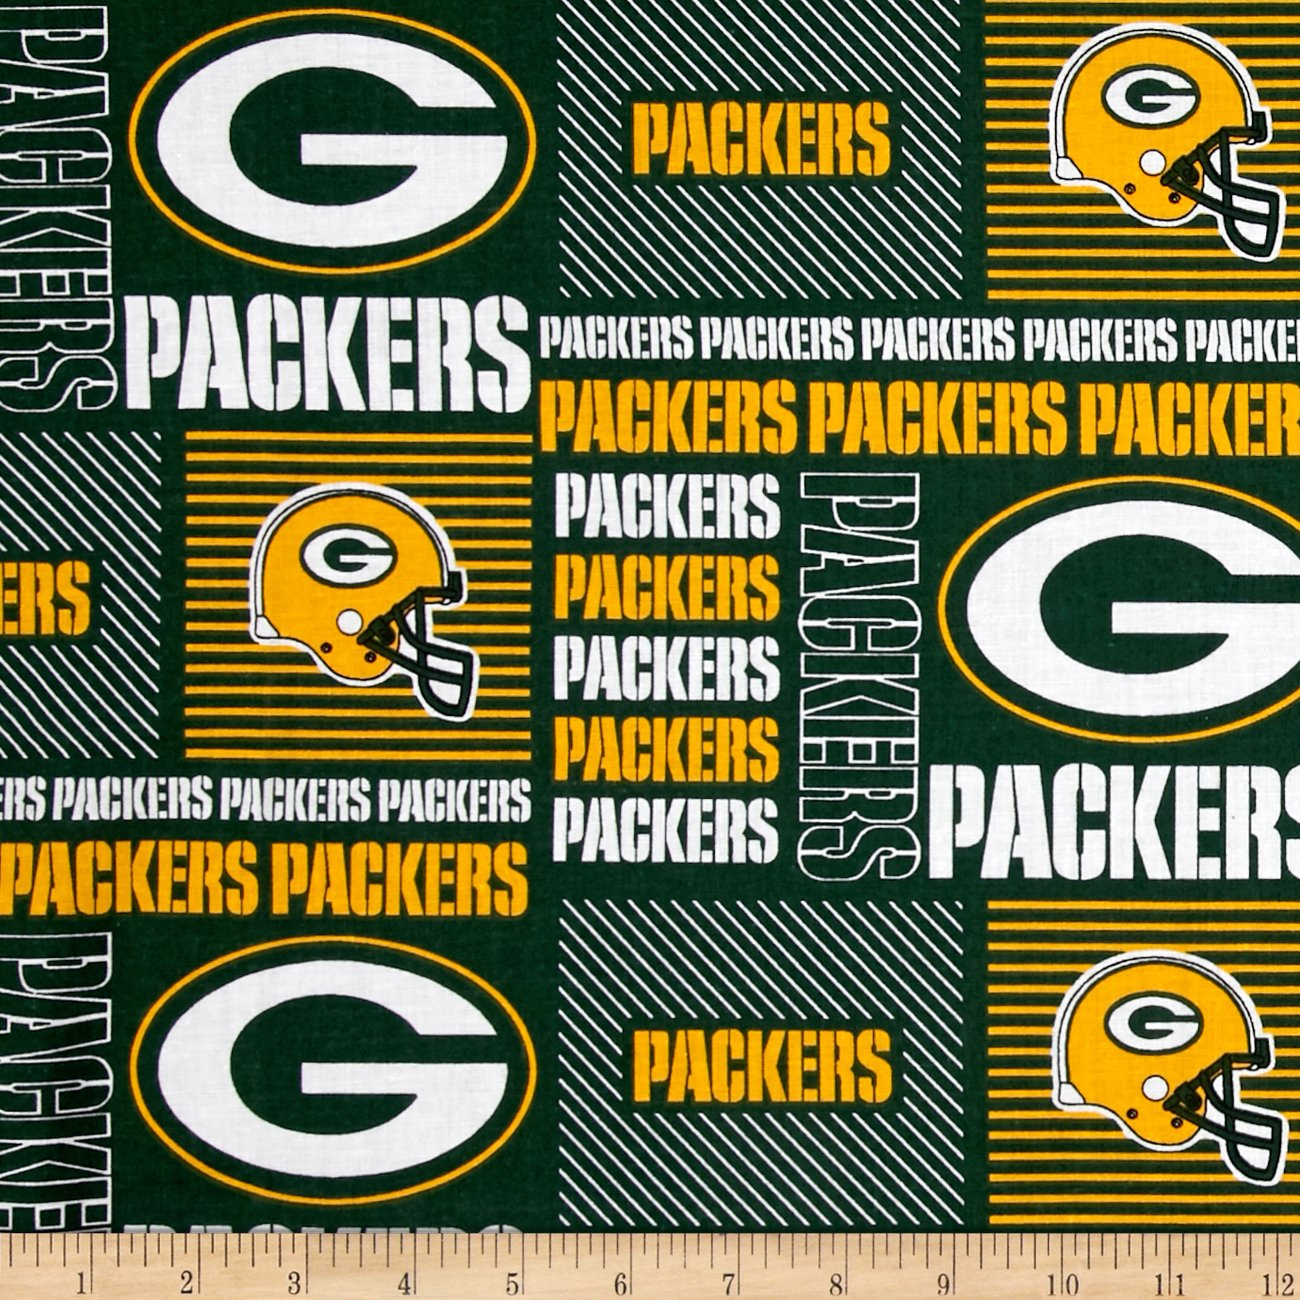 Fabric Traditions NFL Cotton Broadcloth Greenbay Packers Patchwork Green/Yellow Fabric by The Yard, Yell